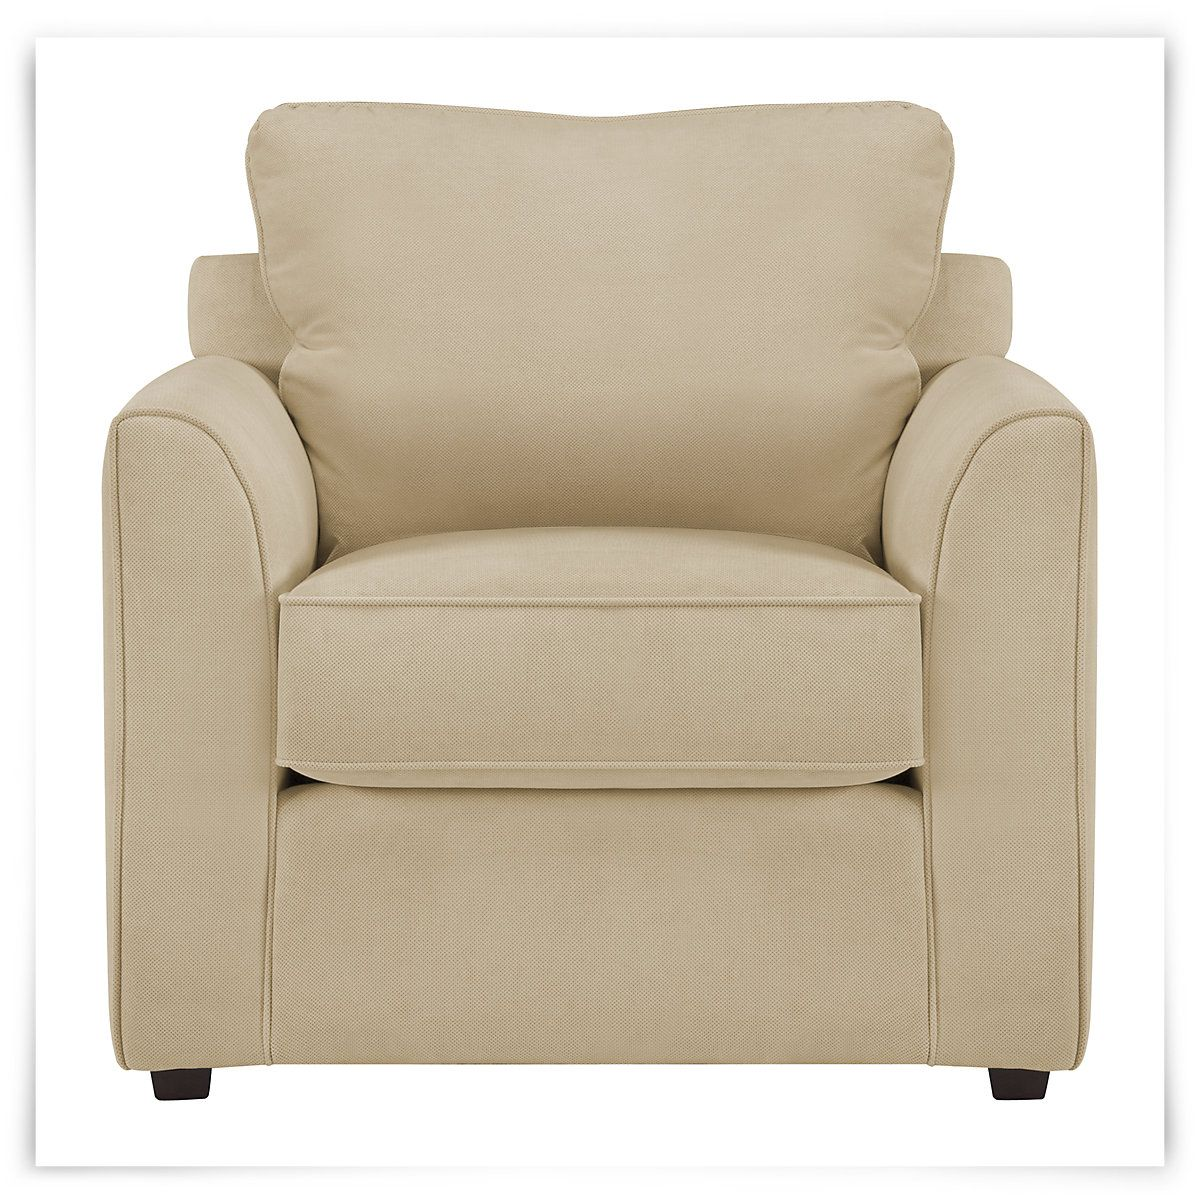 Furniture By Kevin Charles Fine Upholstery Simplicity Speaks Volumes And The Good Looks Plush Comfort Compact Design Of